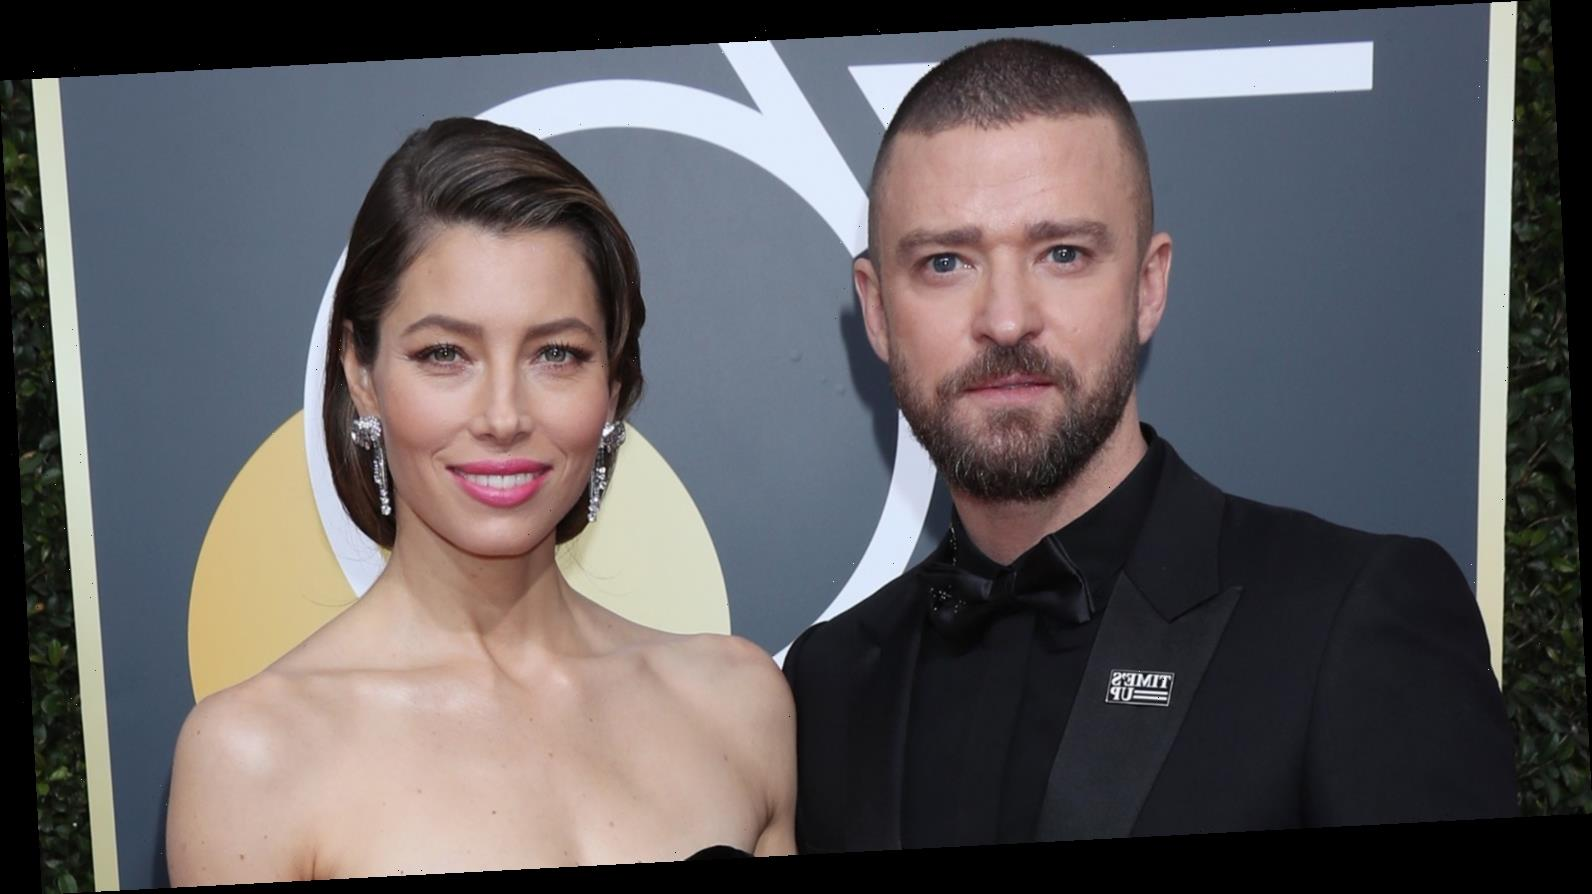 Justin Timberlake and Jessica Biel Link Arms in NYC After PDA Drama